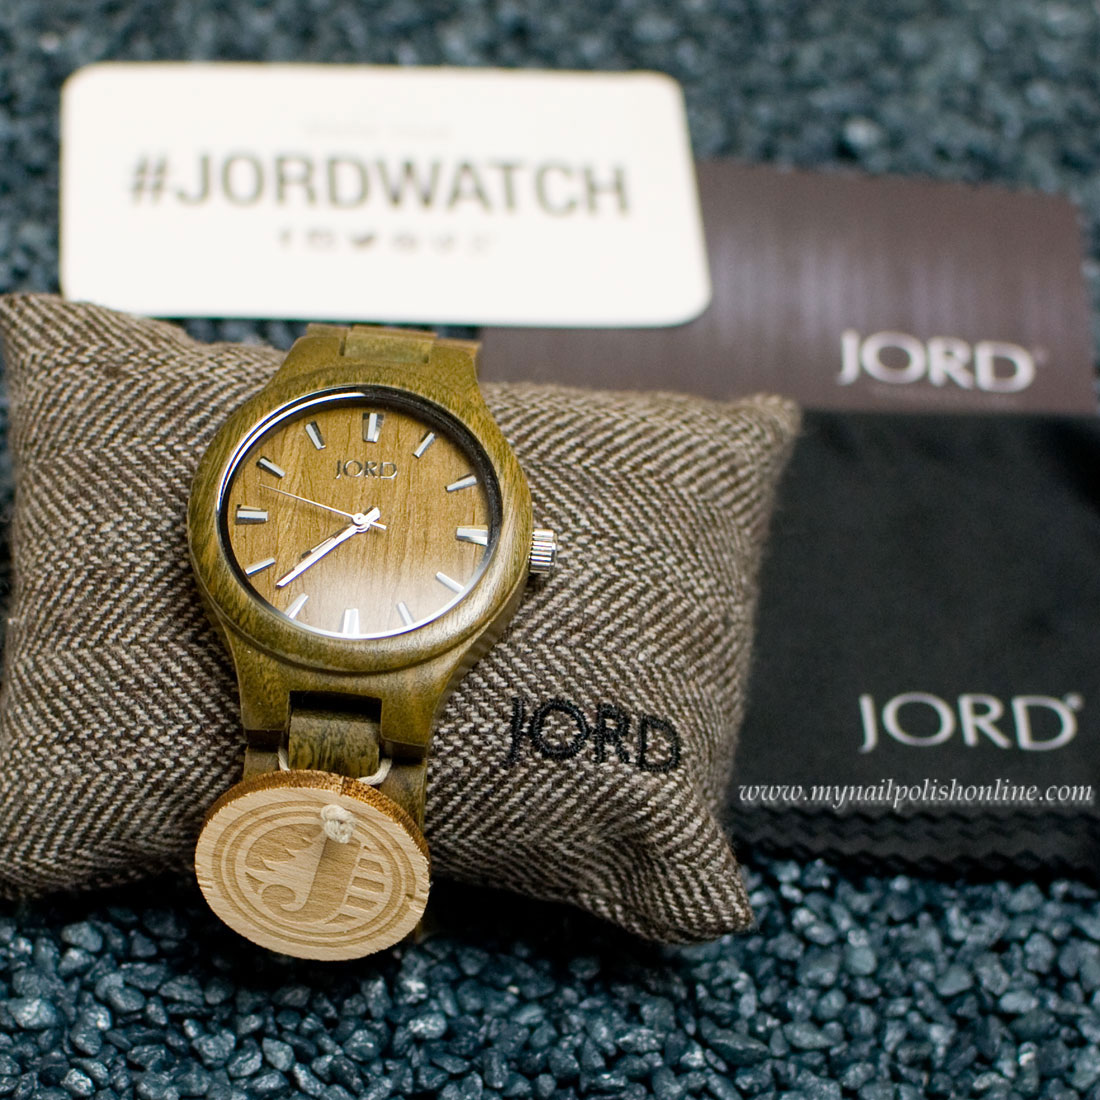 The JORD watch